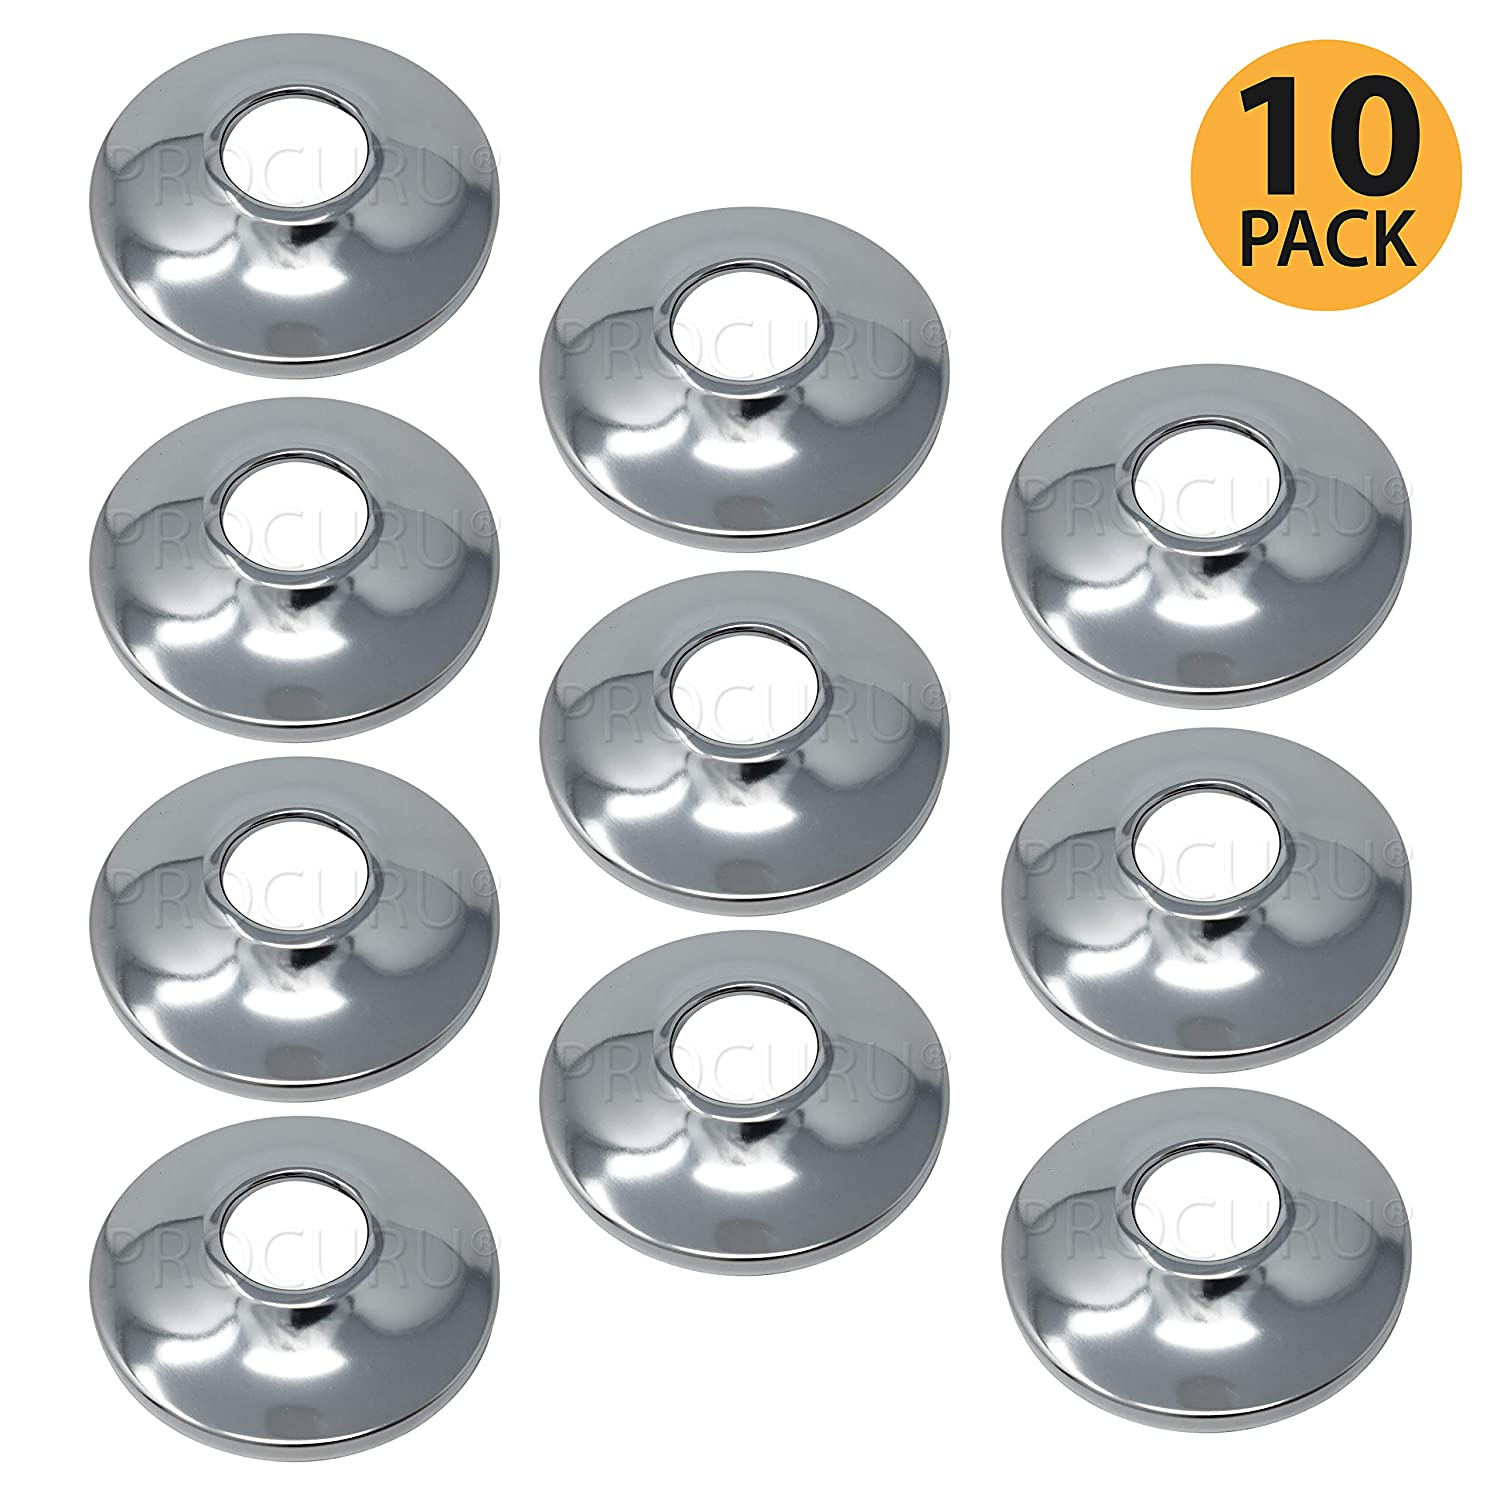 """[10-Pack] PROCURU 1/2-Inch CTS Escutcheon Flange Plate Pipe Cover, Chrome-Plated Steel with SureGrip, for 1/2"""" Copper Pipe"""